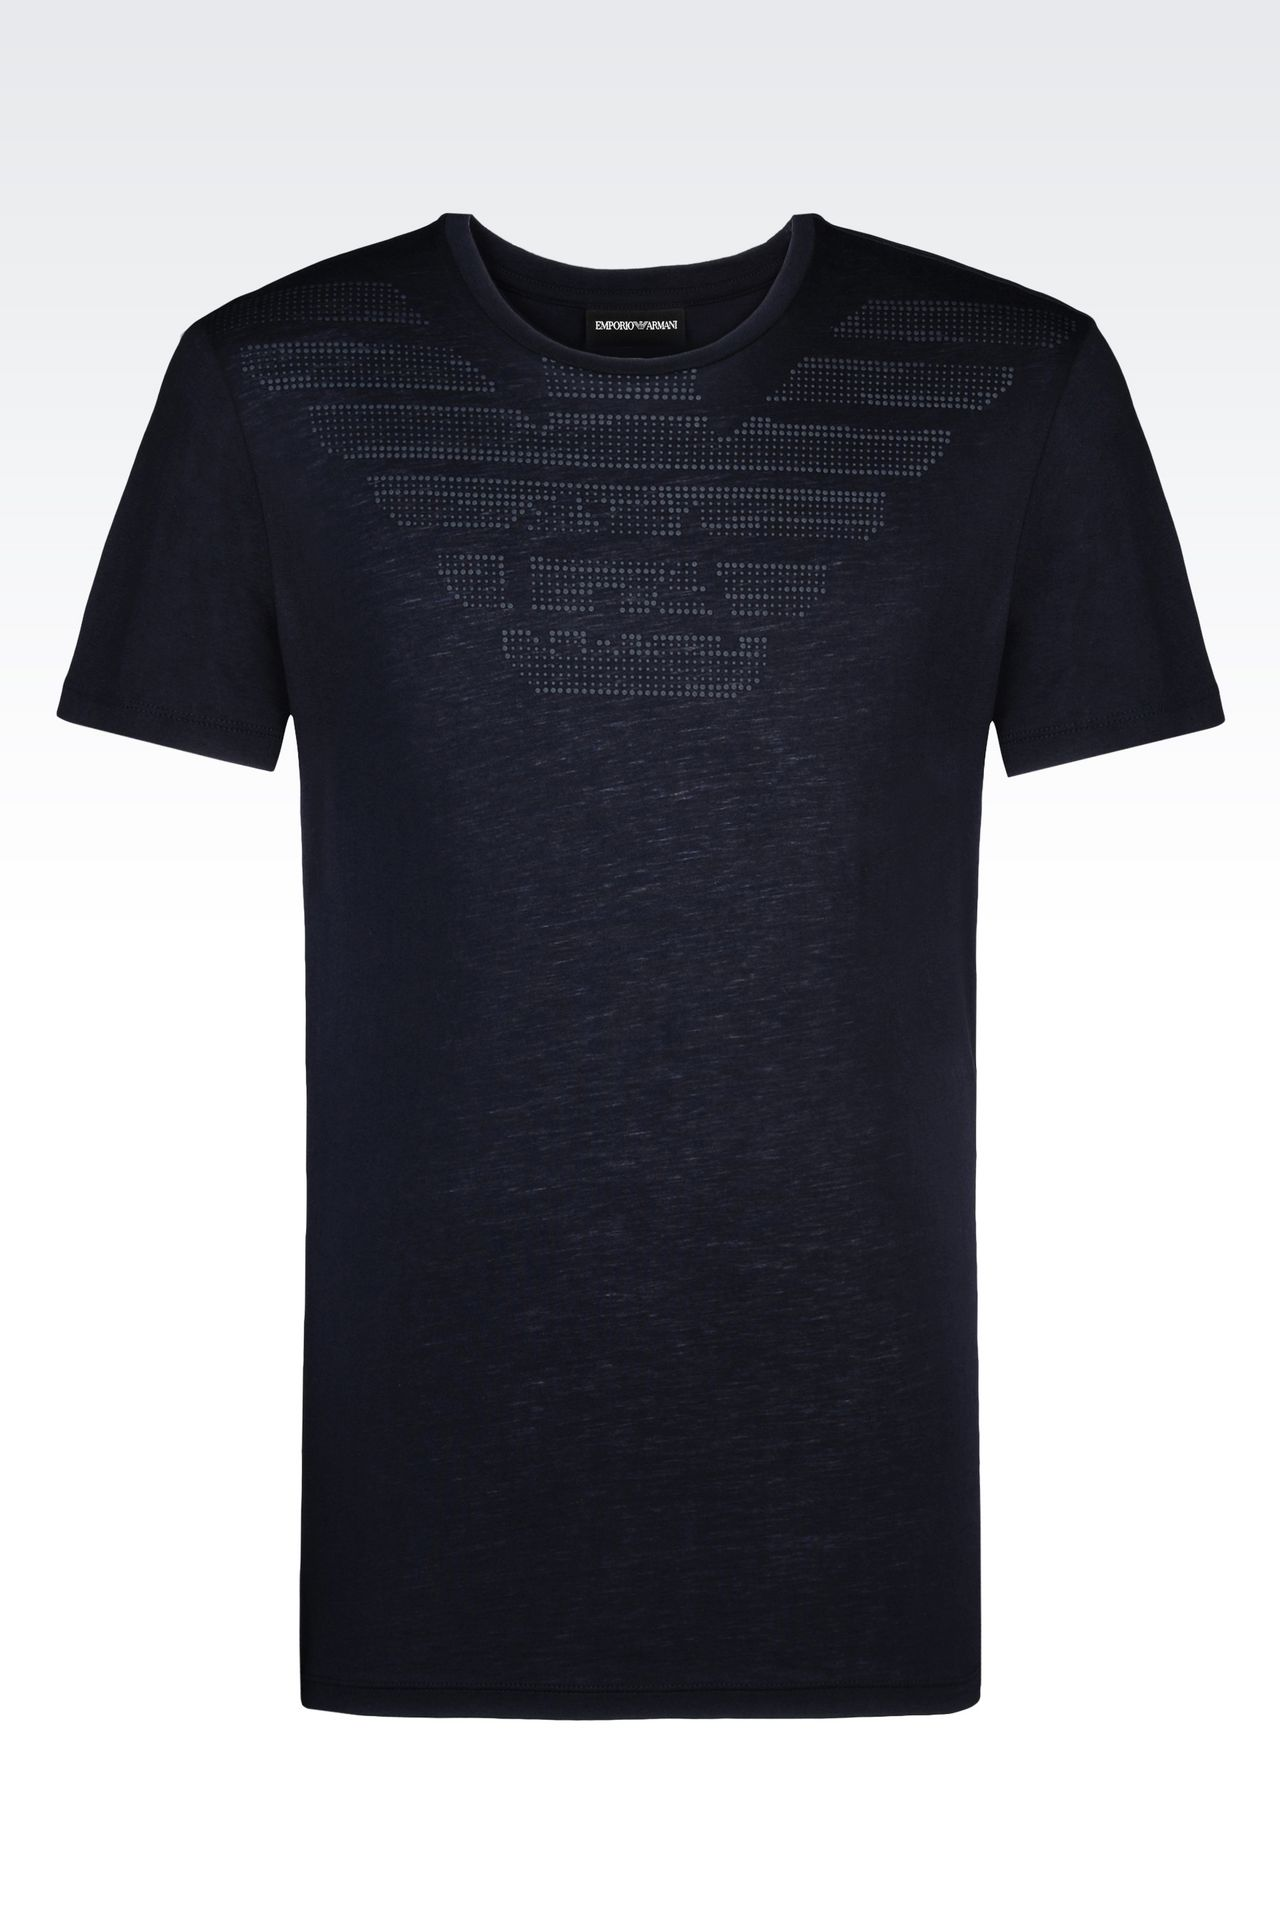 emporio armani men jersey t shirt cotton. Black Bedroom Furniture Sets. Home Design Ideas